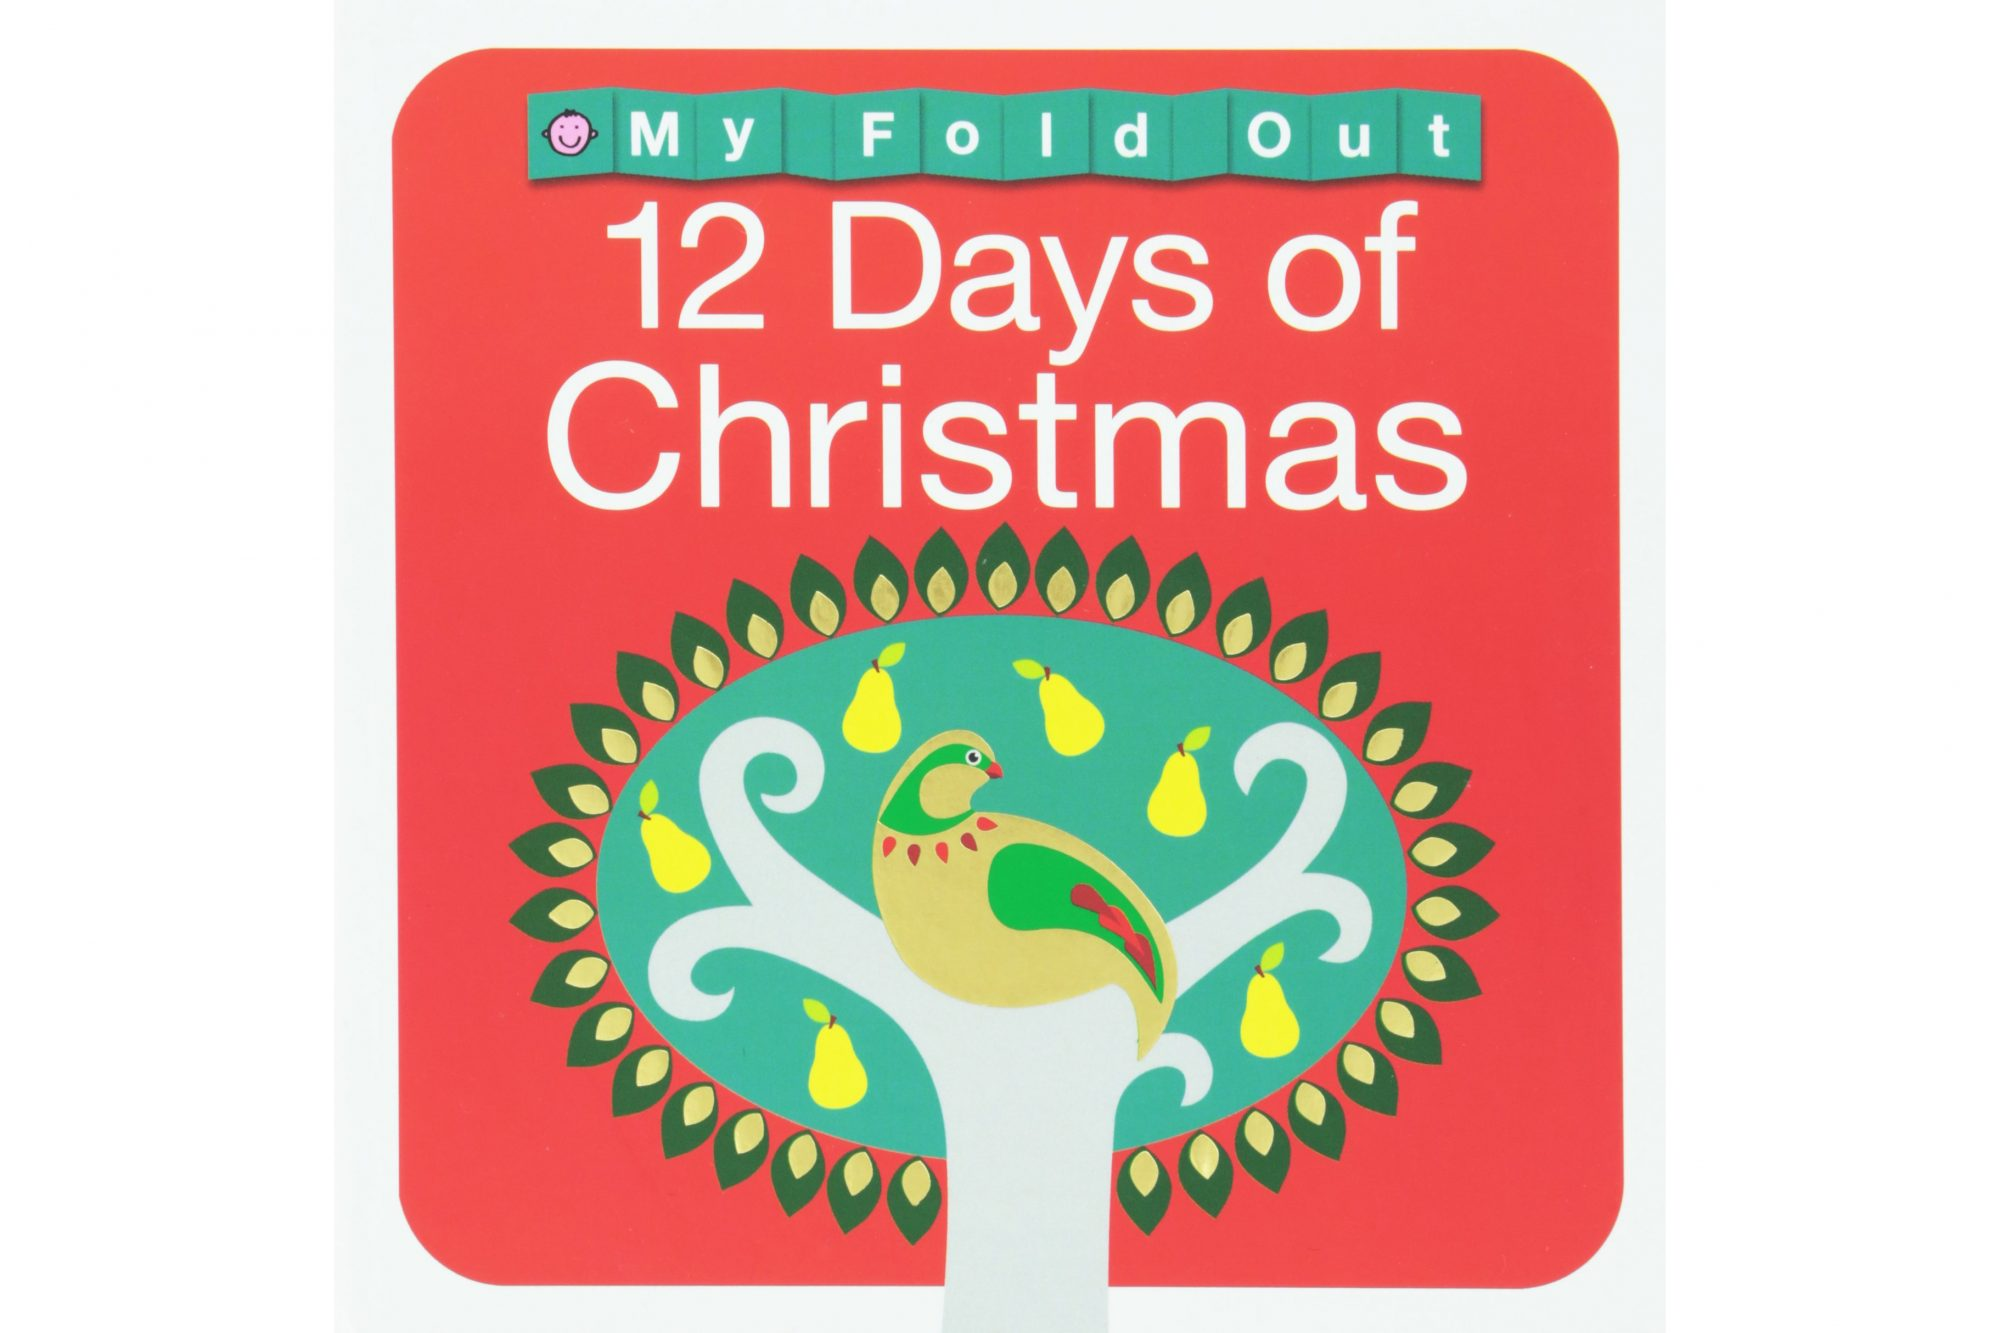 My Fold Out Books 12 Days of Christmas, by Roger Priddy